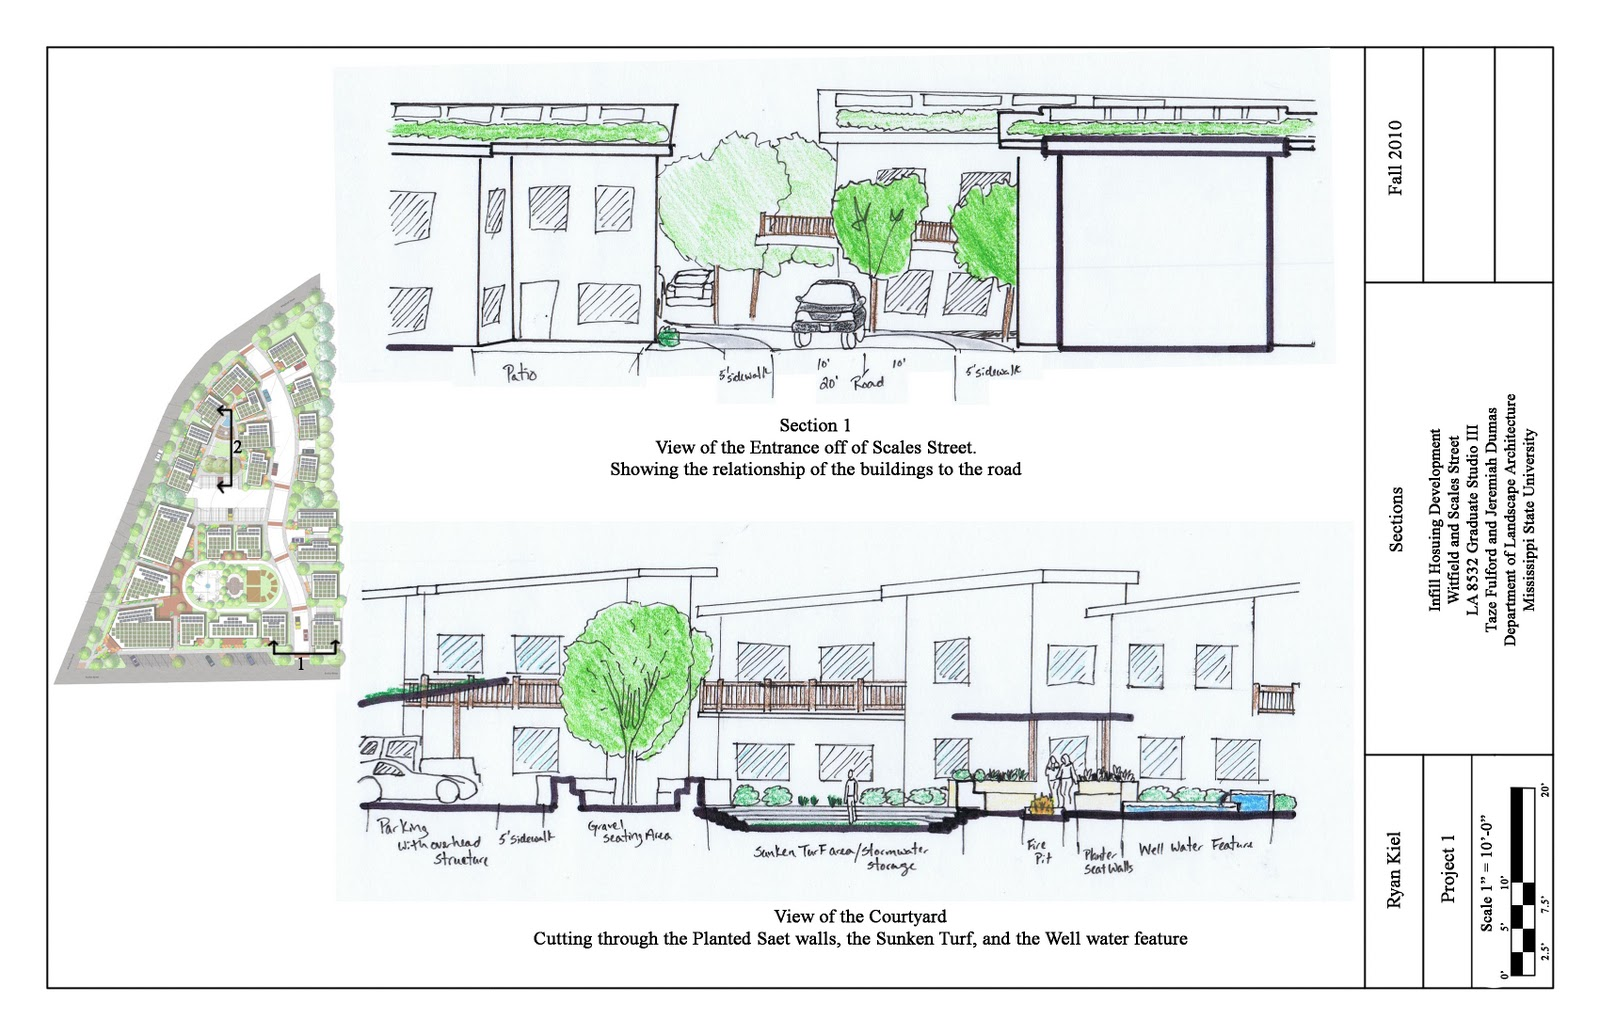 Home Plans With Courtyard Landscape Architecture Sections Of The Master Plan